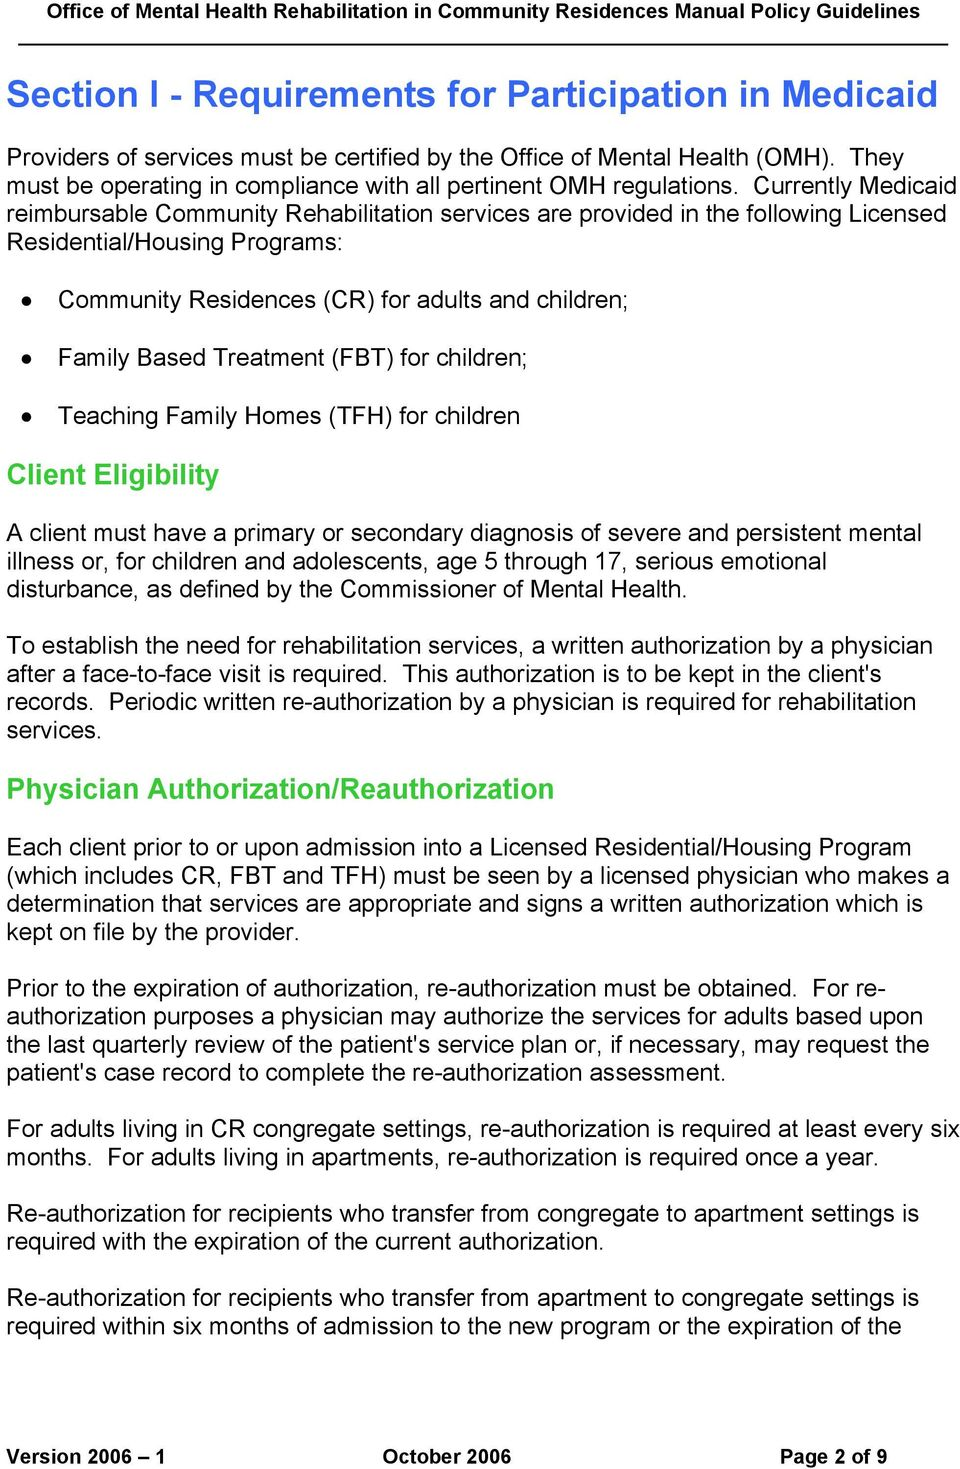 Currently Medicaid reimbursable Community Rehabilitation services are provided in the following Licensed Residential/Housing Programs: Community Residences (CR) for adults and children; Family Based